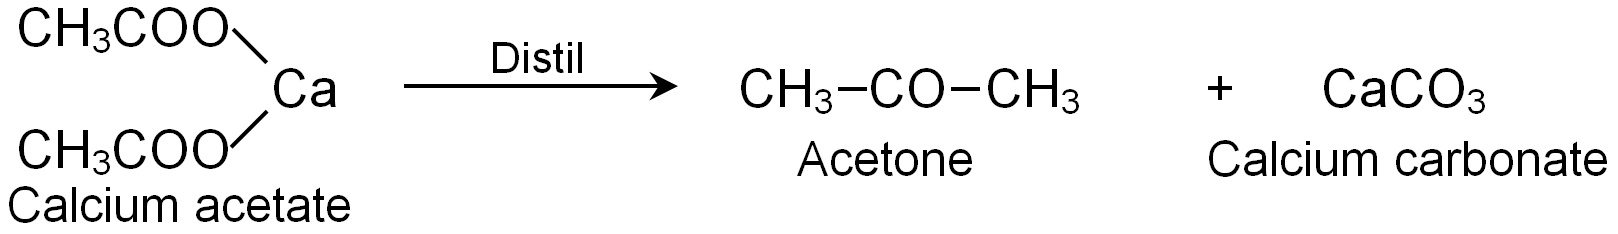 Formation Of Acetone From Calcium Acetate